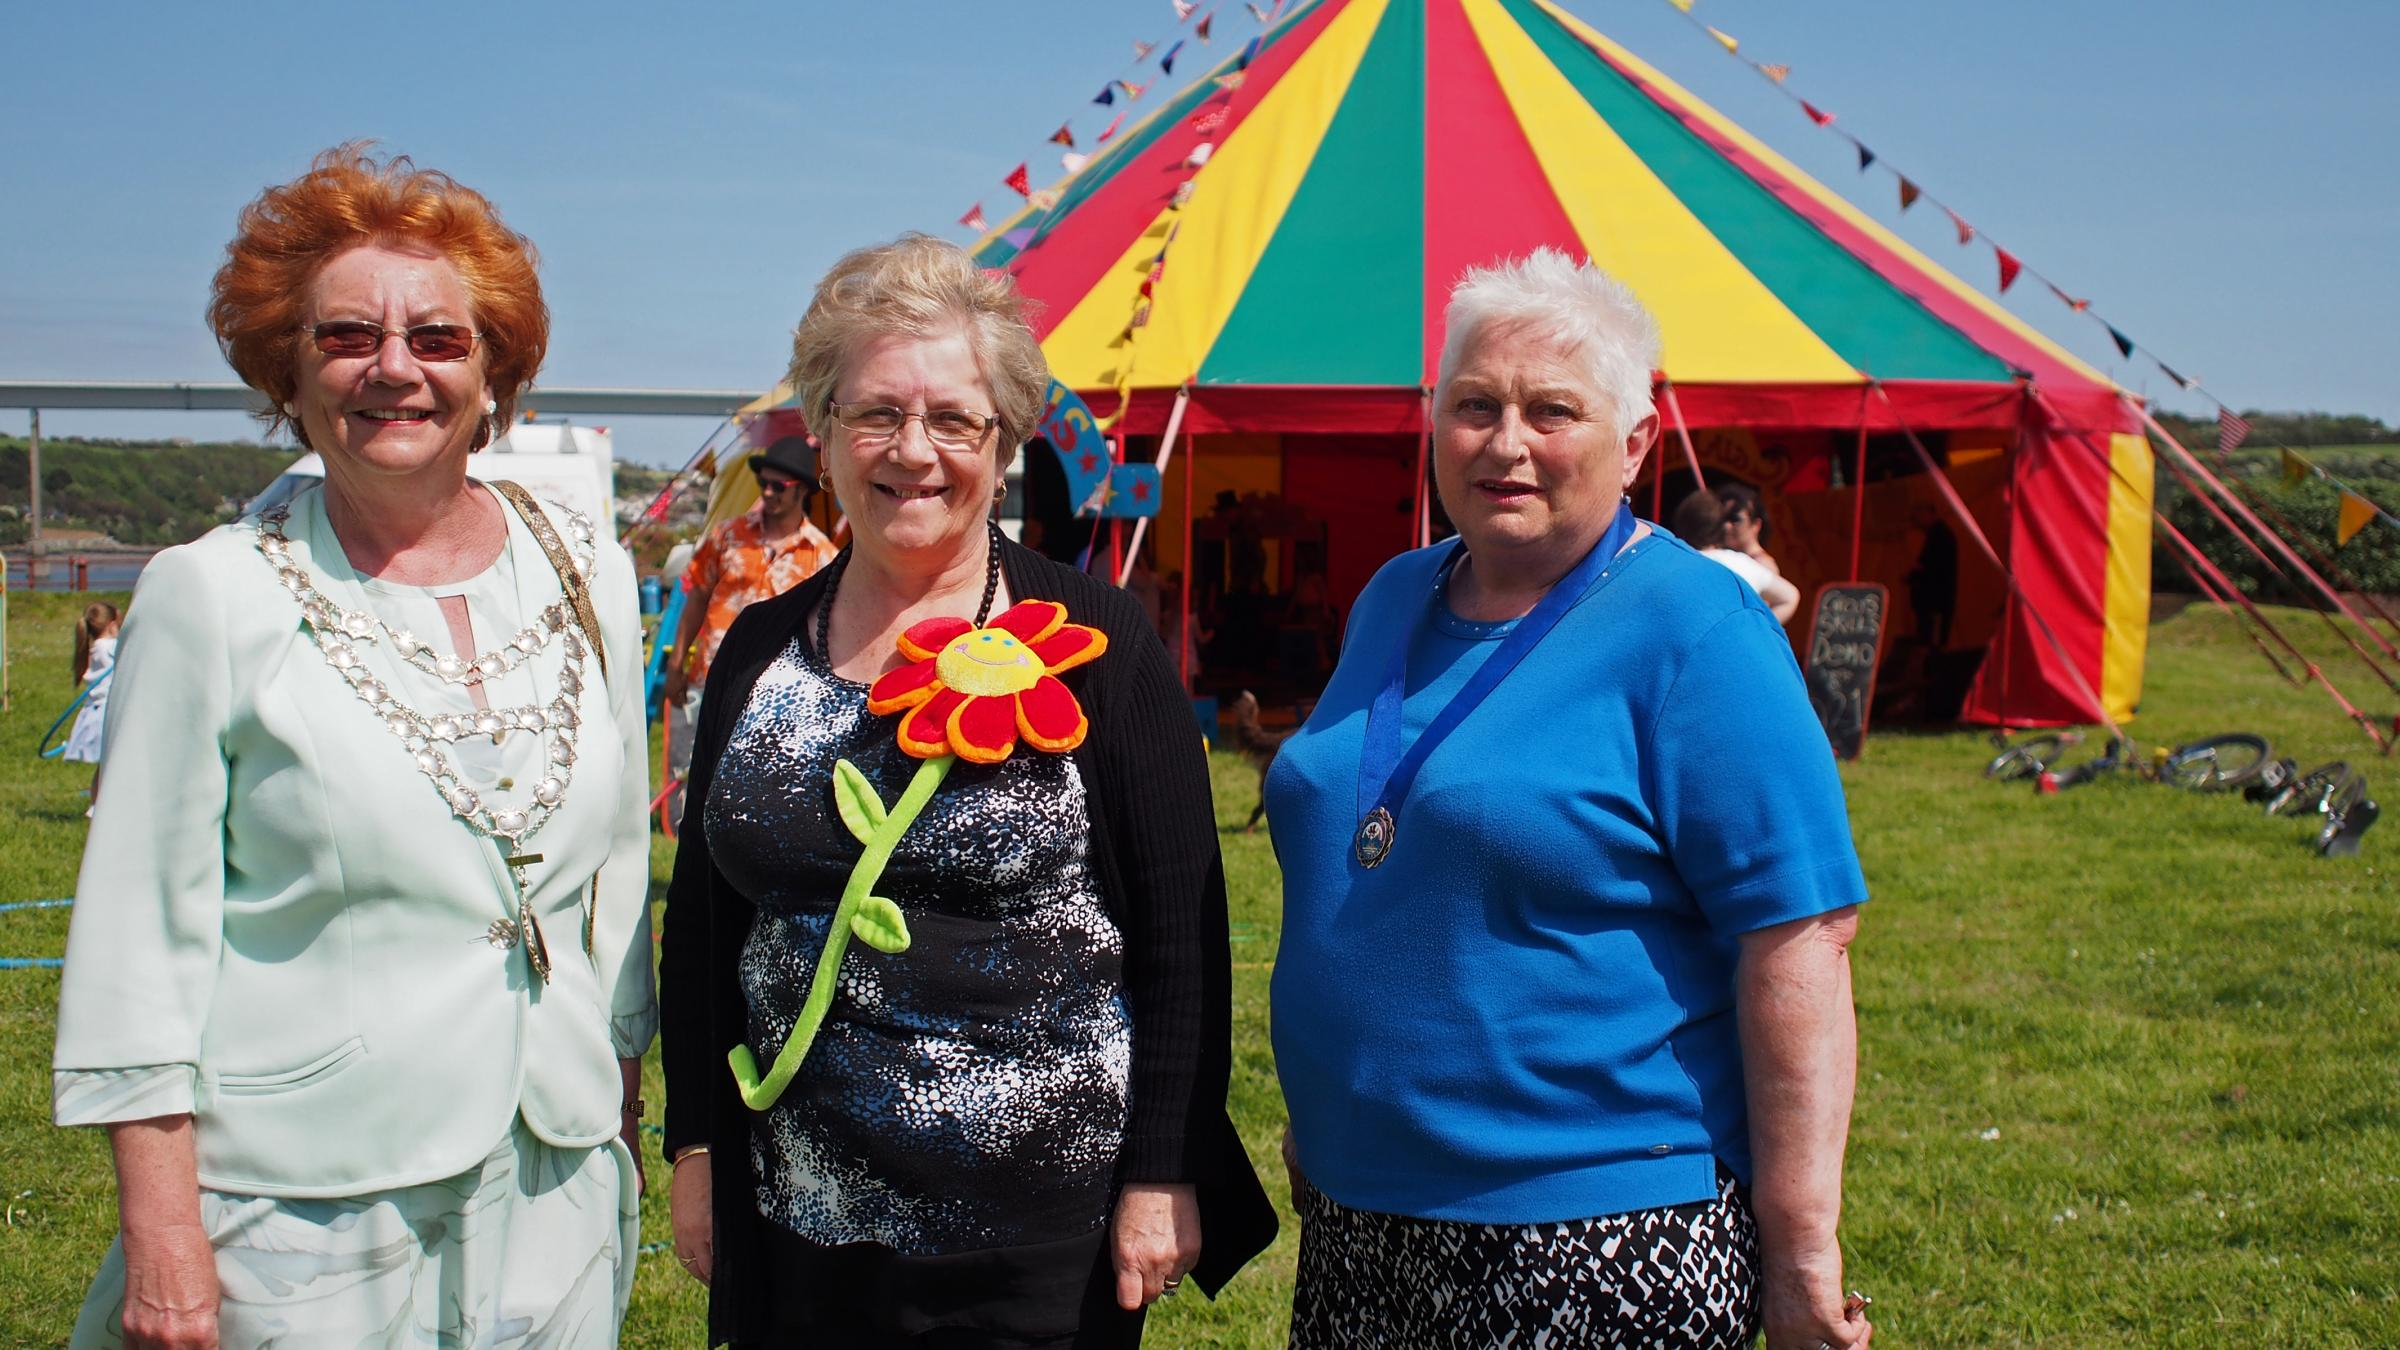 BIG TOP DAY: Outgoing Mayor of Neyland Maureen Molyneux, consort Jennie Rayner and incoming Deputy Mayor Margaret Brace. PICTURE: Milford Mercury.